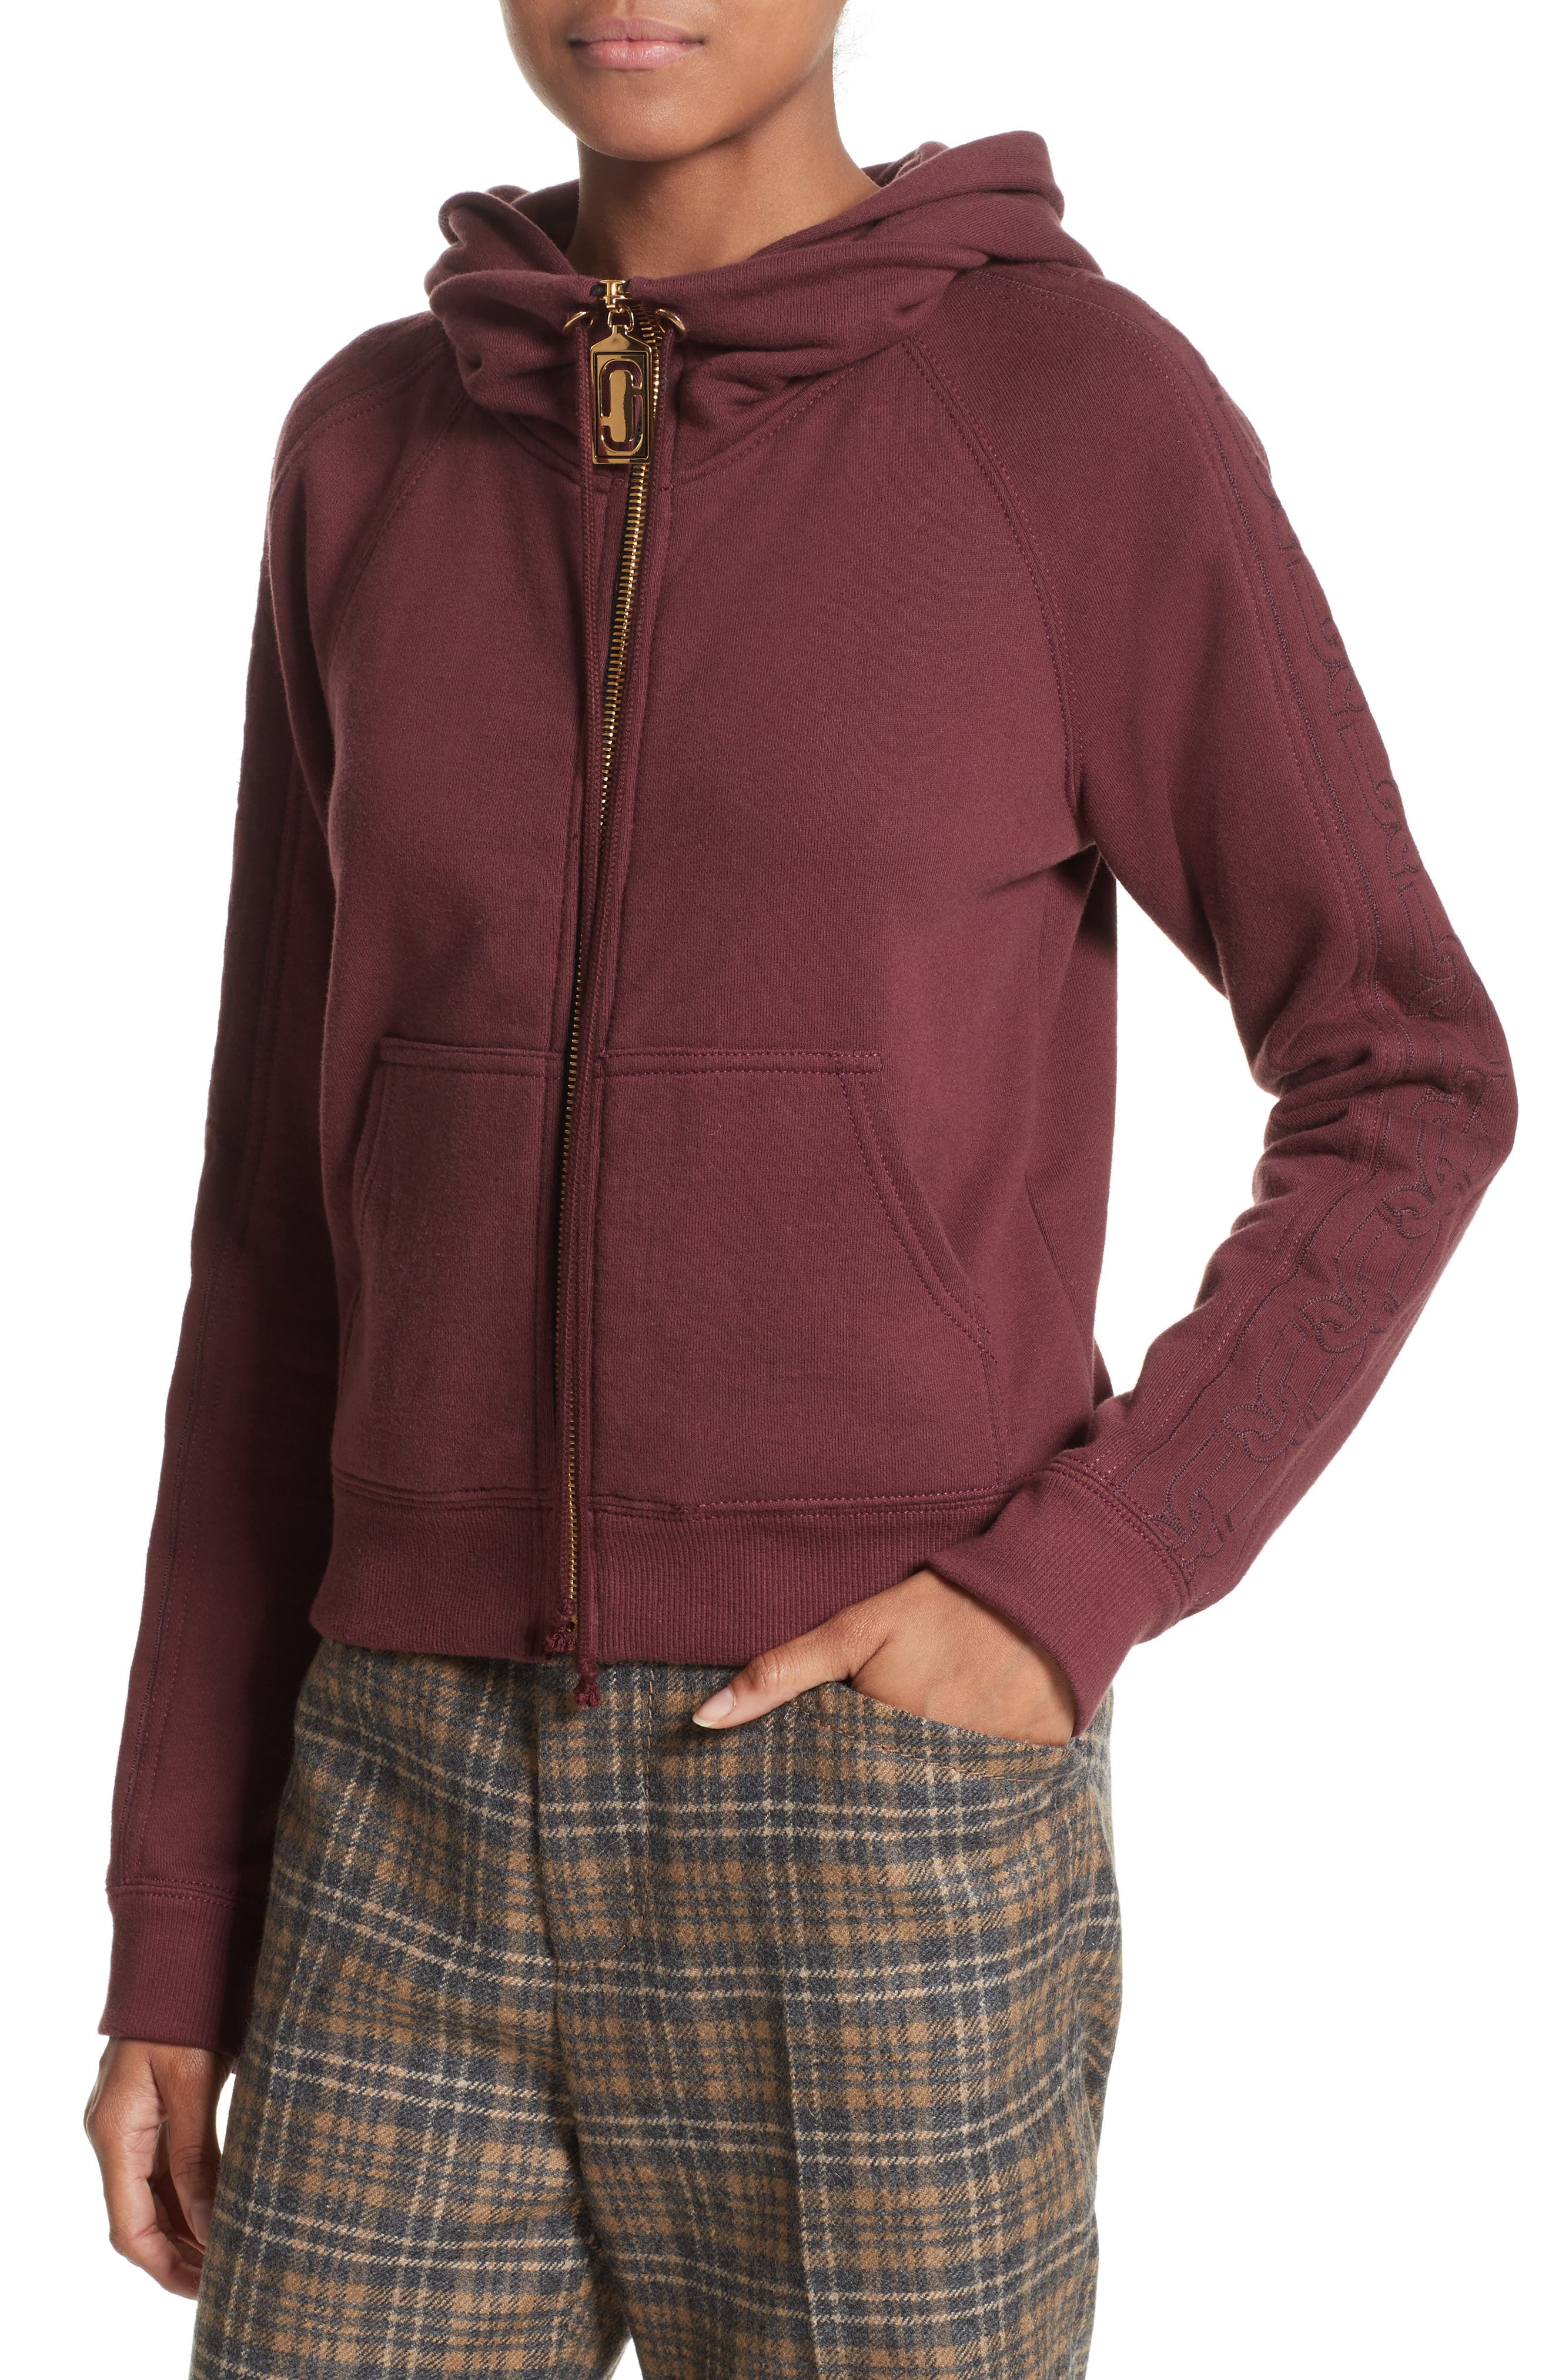 Embroidered Sleeve Hoodie,                             Alternate thumbnail 4, color,                             930